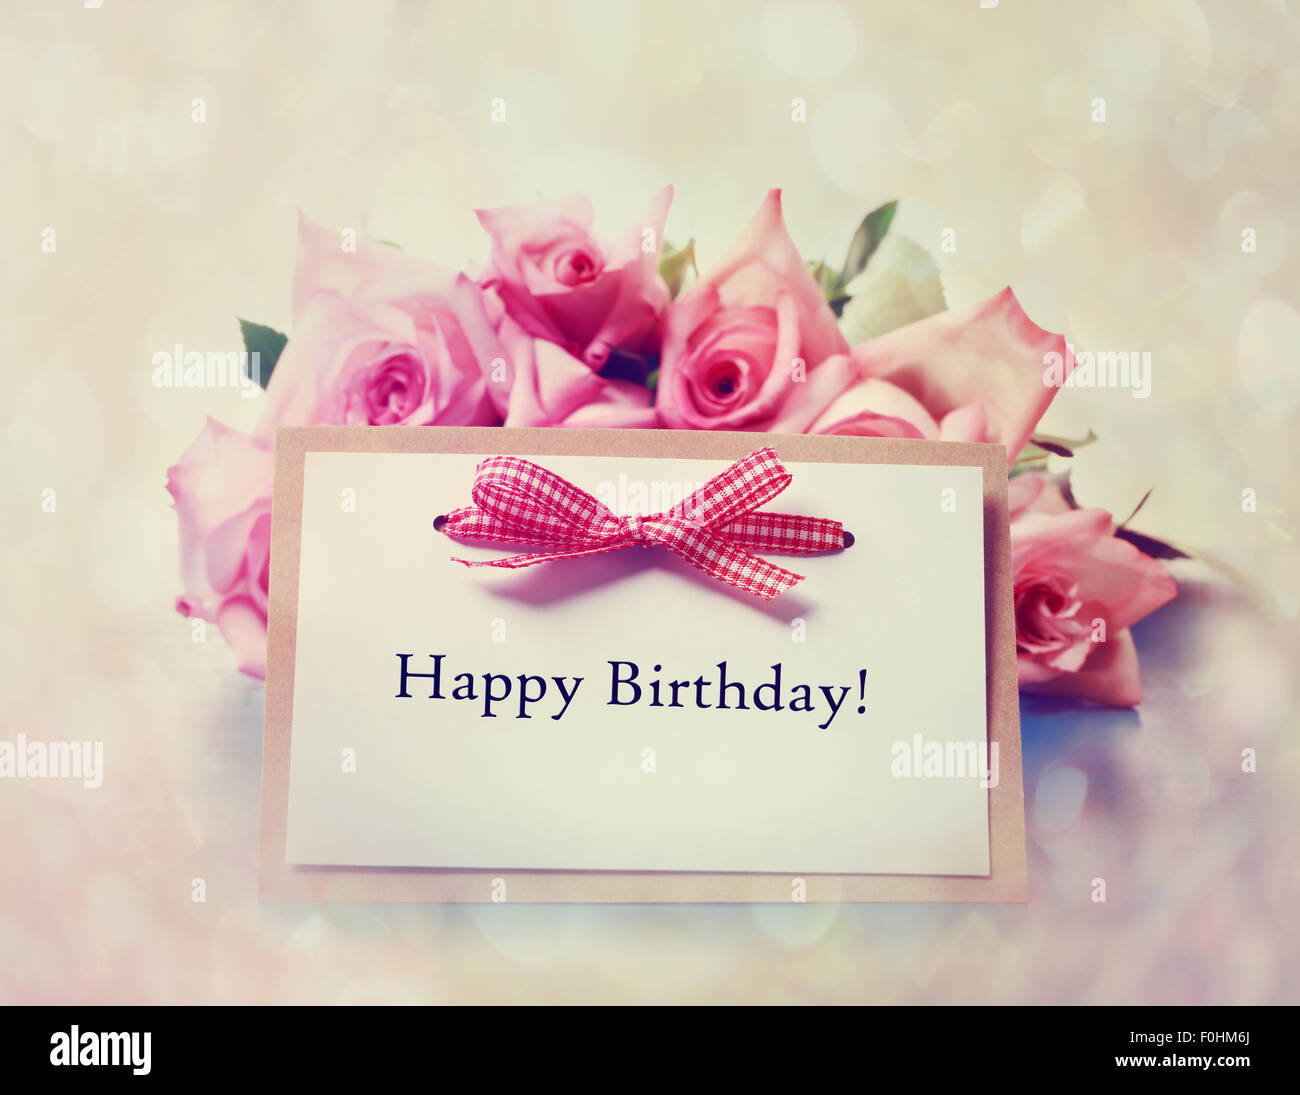 Happy Birthday Message Card With Retro Pink Roses Stock Photo